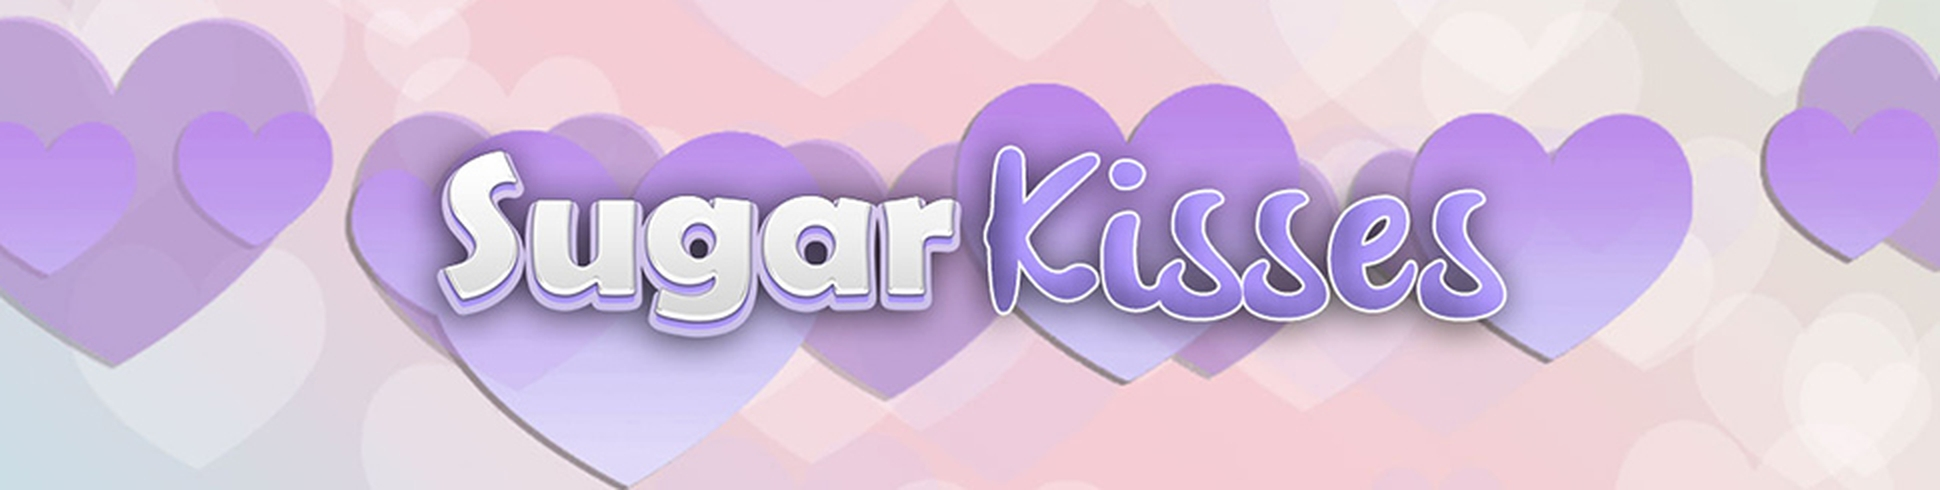 The Sugar Kisses Online Slot Demo Game by Mobilots